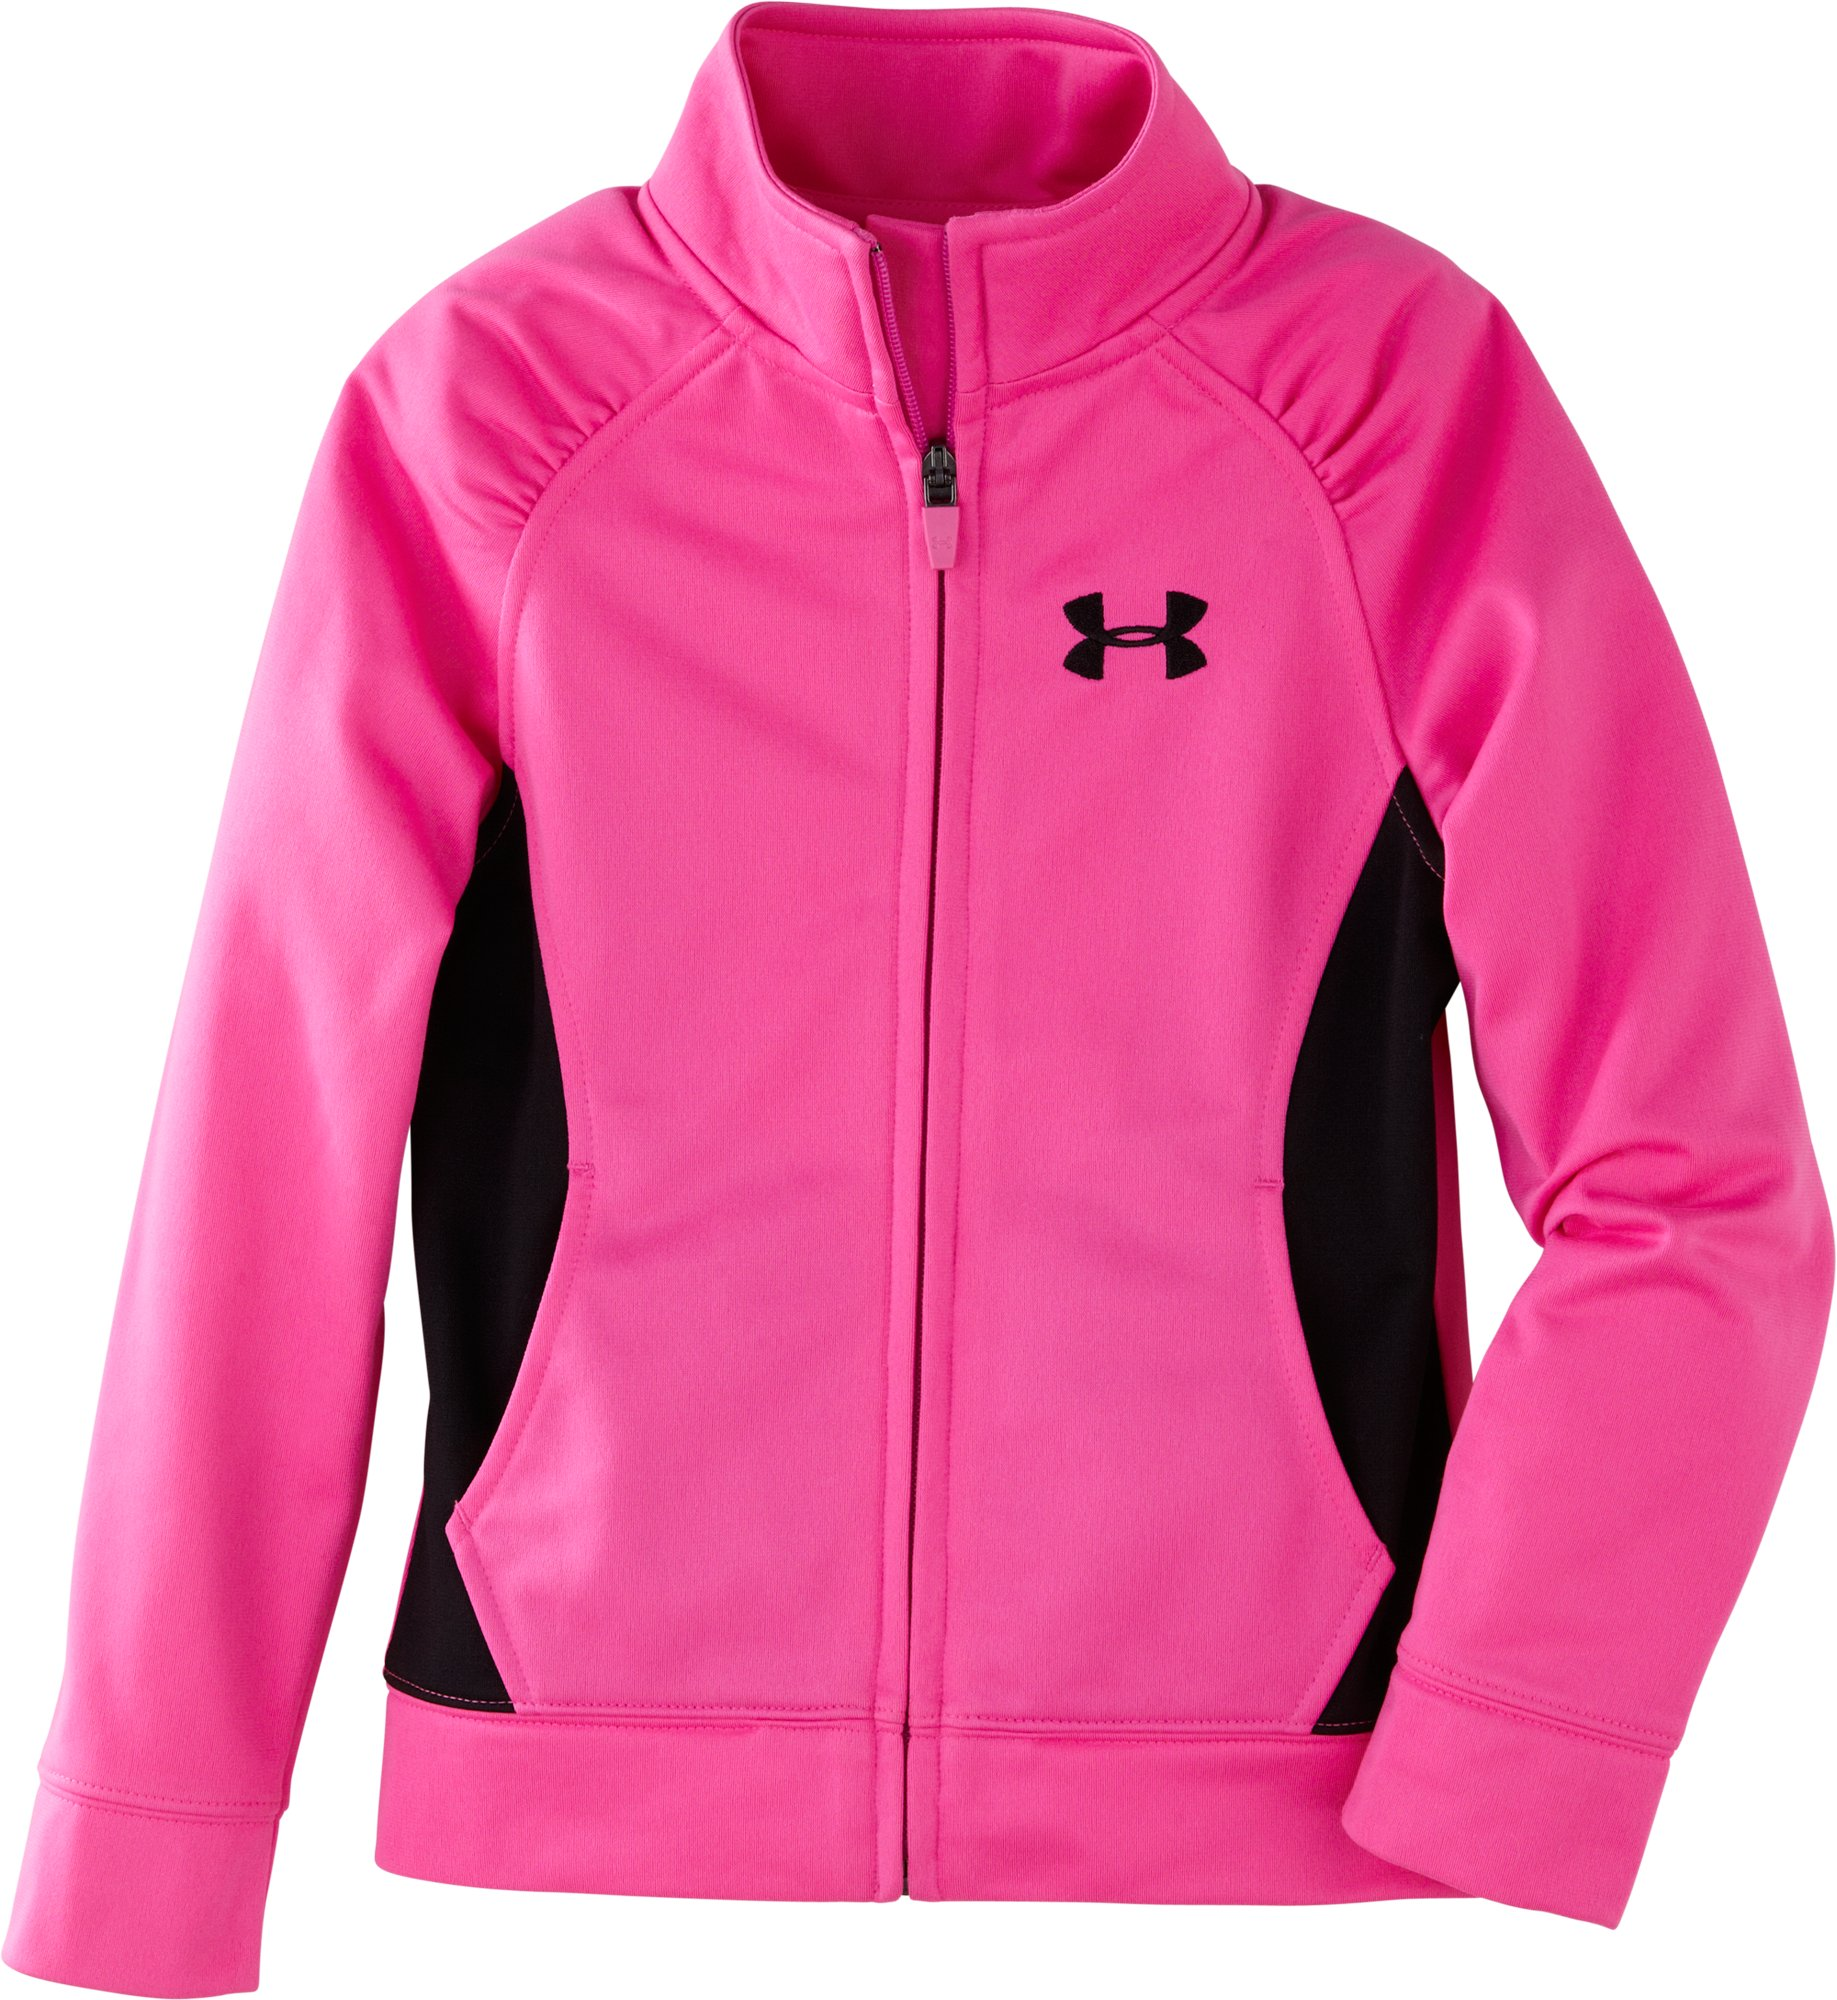 Girls' Infant UA Track Jacket, CHAOS, zoomed image